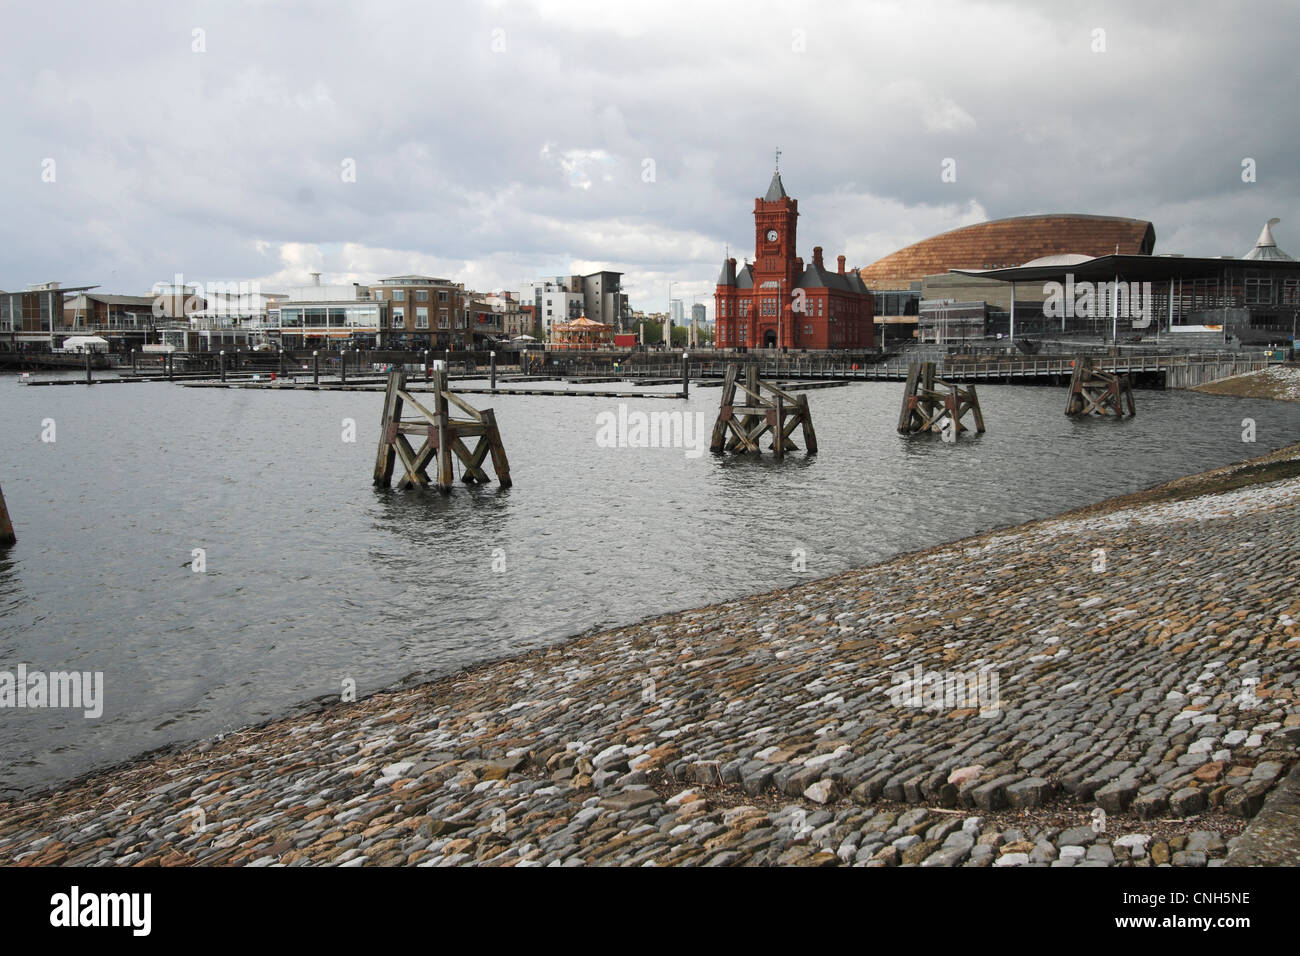 Cardiff Docks - revitalised dockland now supporting new business - Stock Image